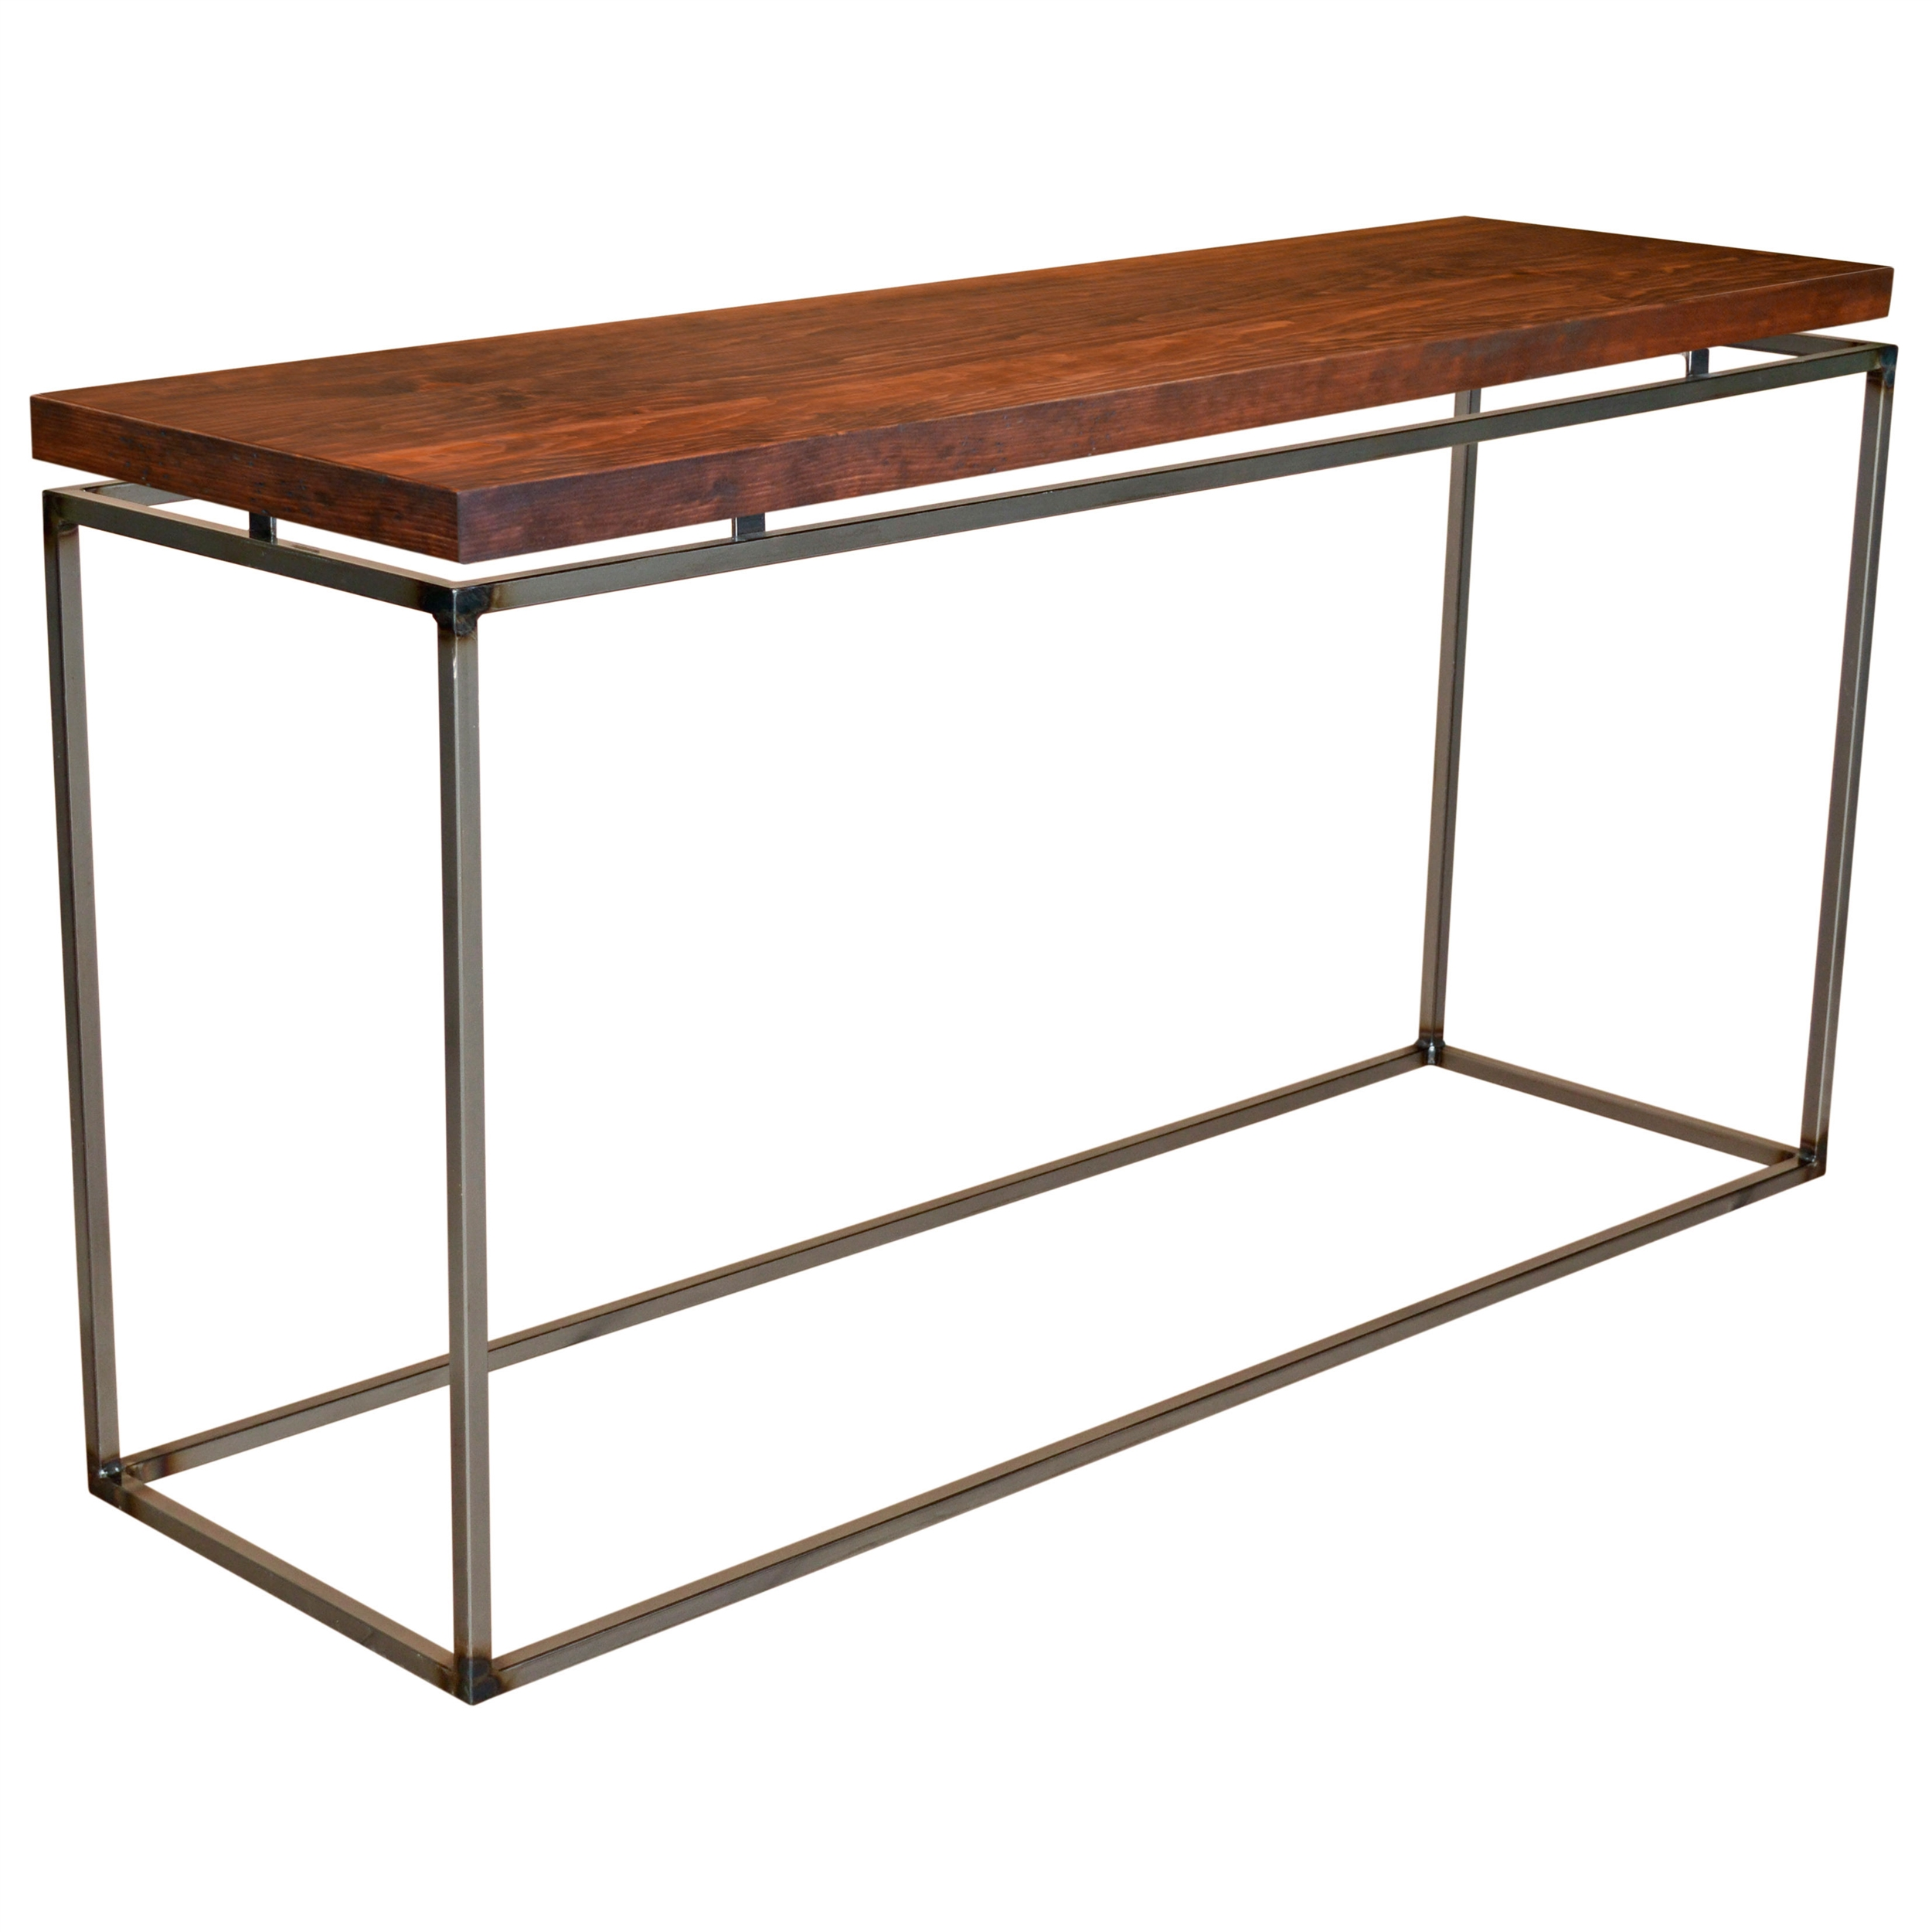 Wrought Iron Console Tables & Sofa Tables